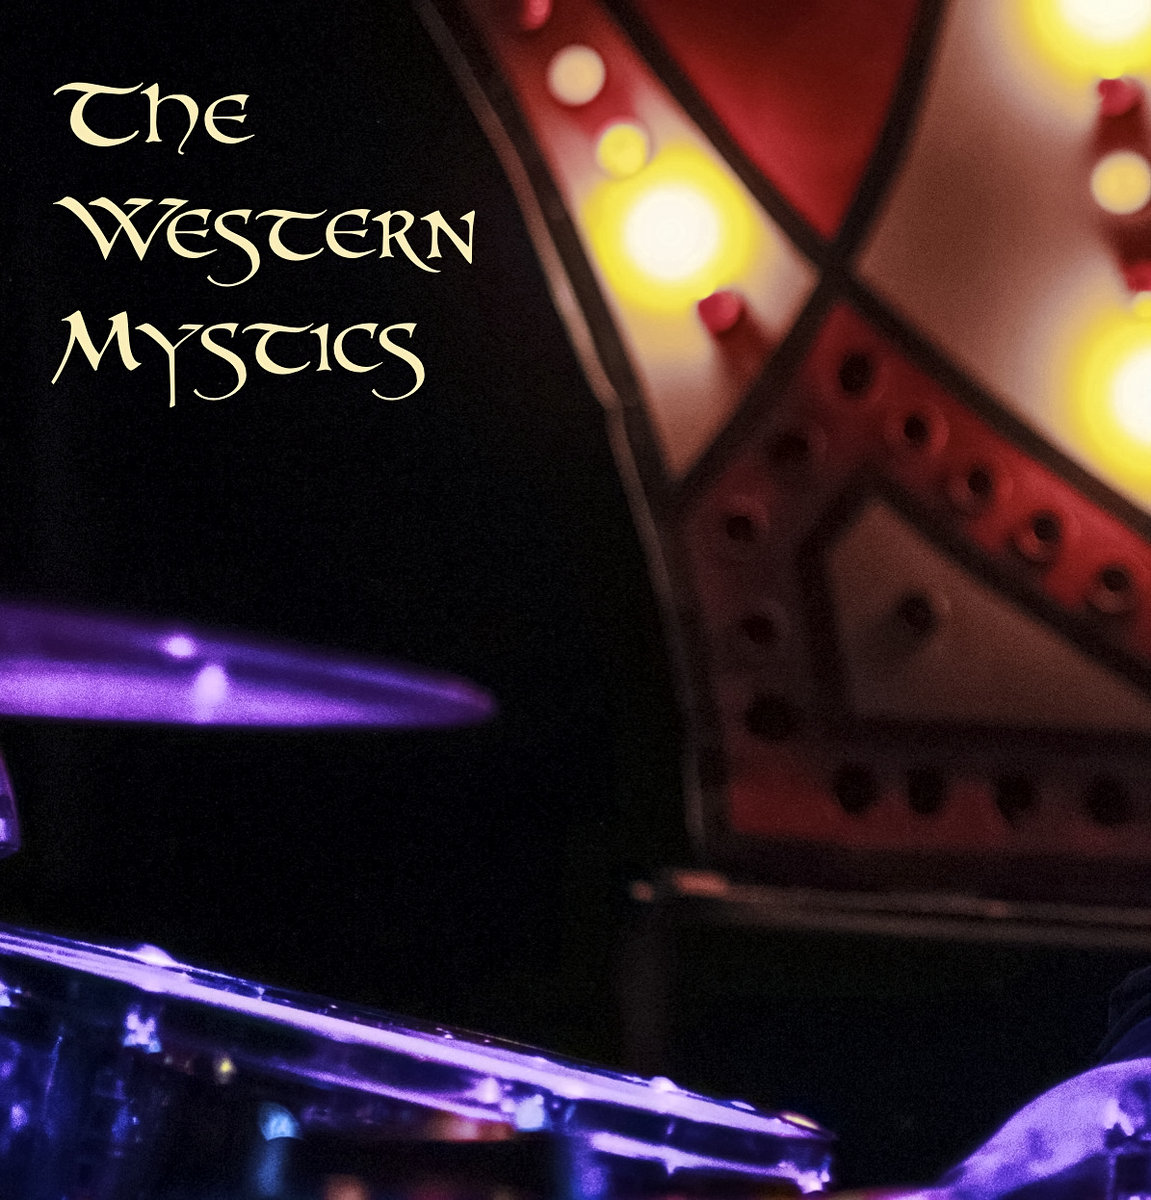 The Western Mystics Once Upon a Time in the Cosmos (Live at Neurolux)